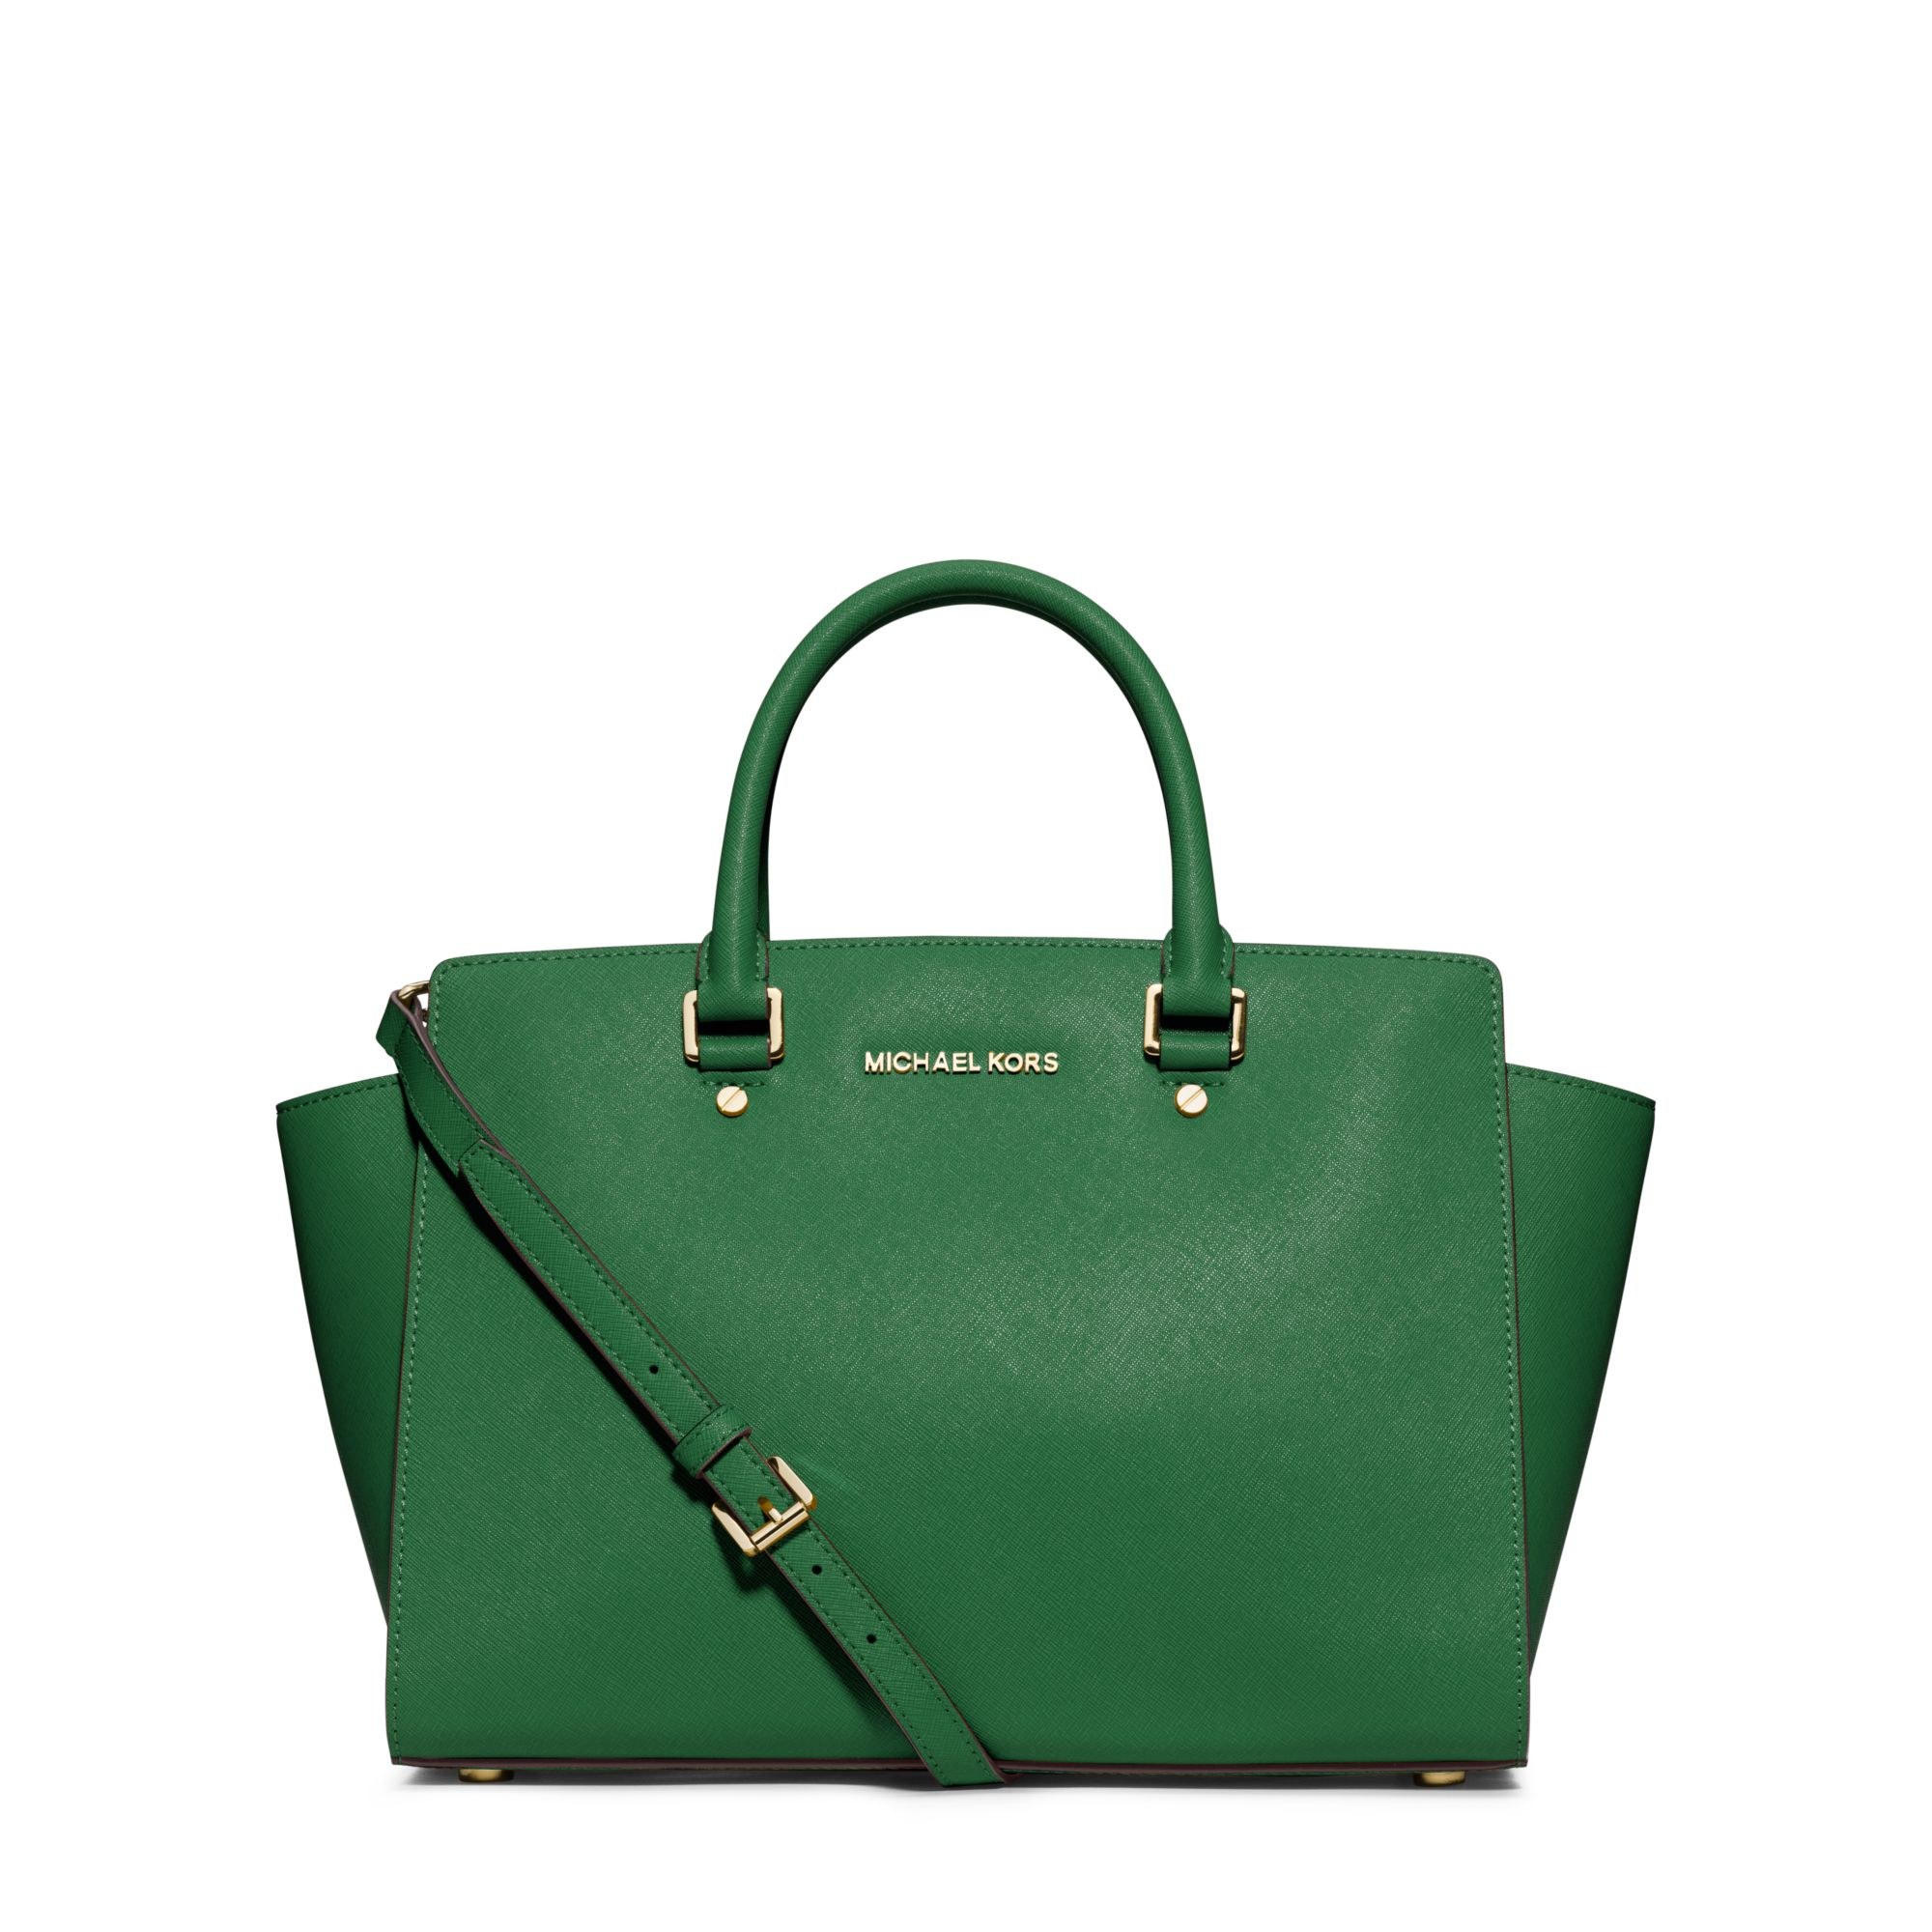 Michael Kors Laukkukoru : Michael kors selma large saffiano leather satchel in green